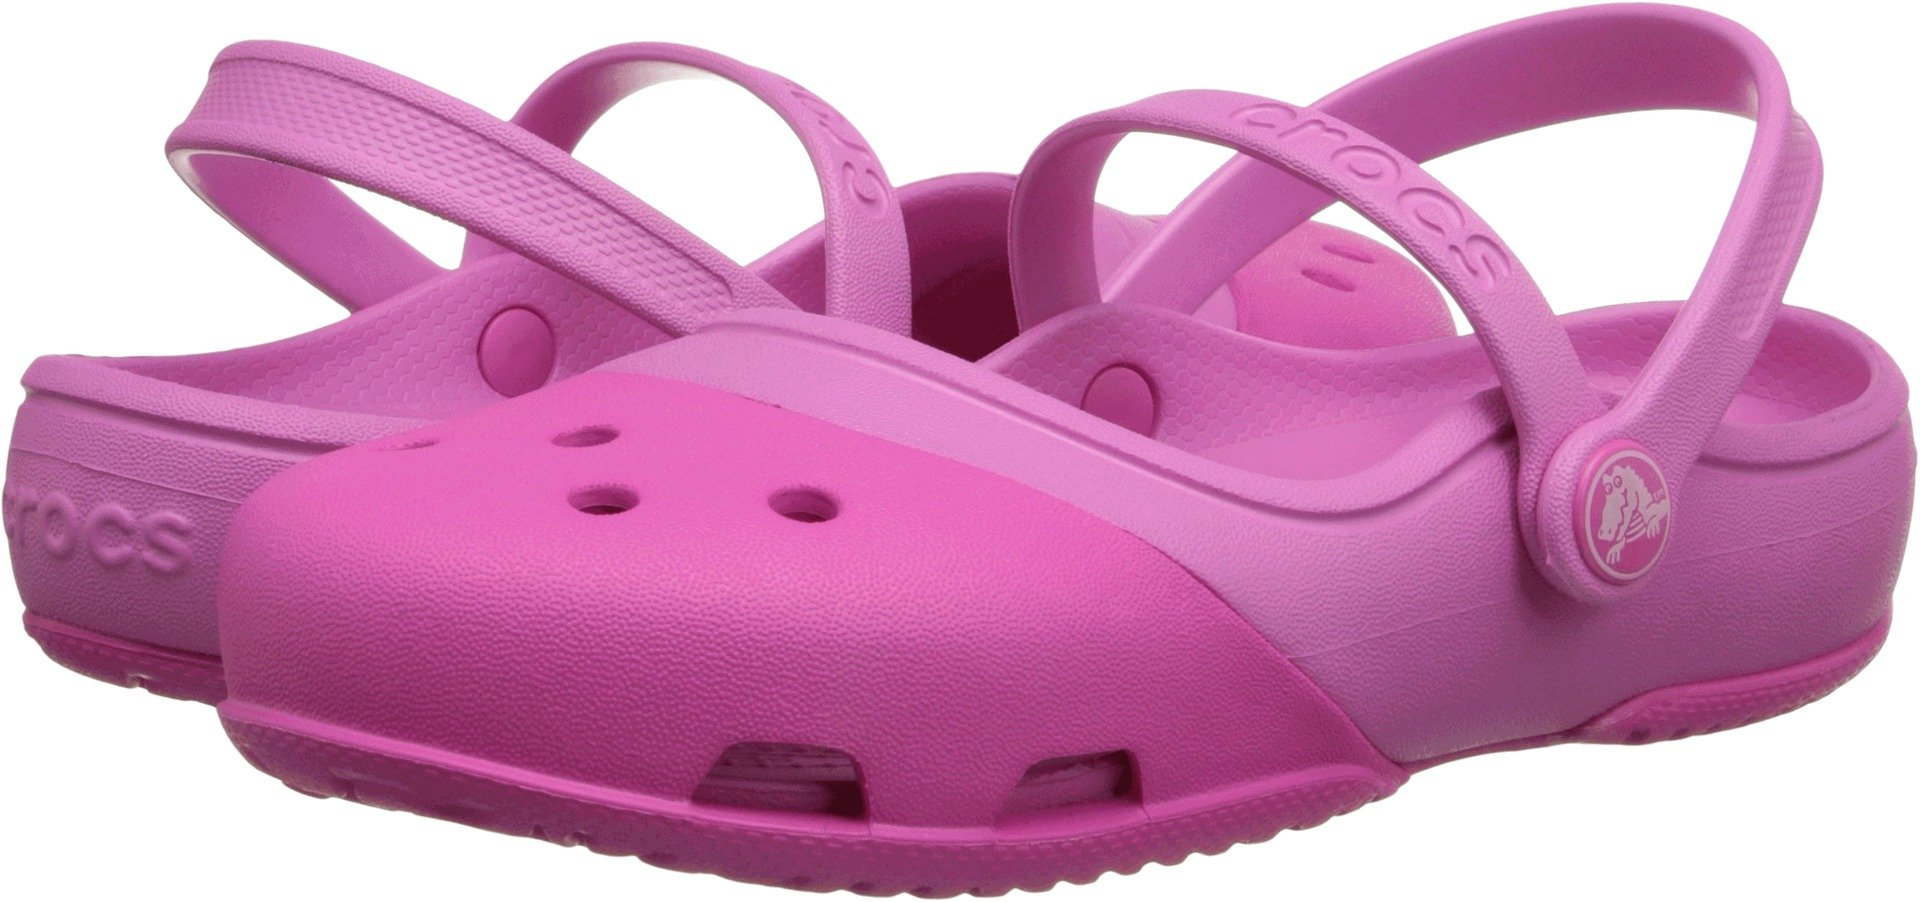 Crocs - Girls Electro II MJ PS Clogs, Size: 4 M US Toddler, Color: Neon Magenta/Party Pink